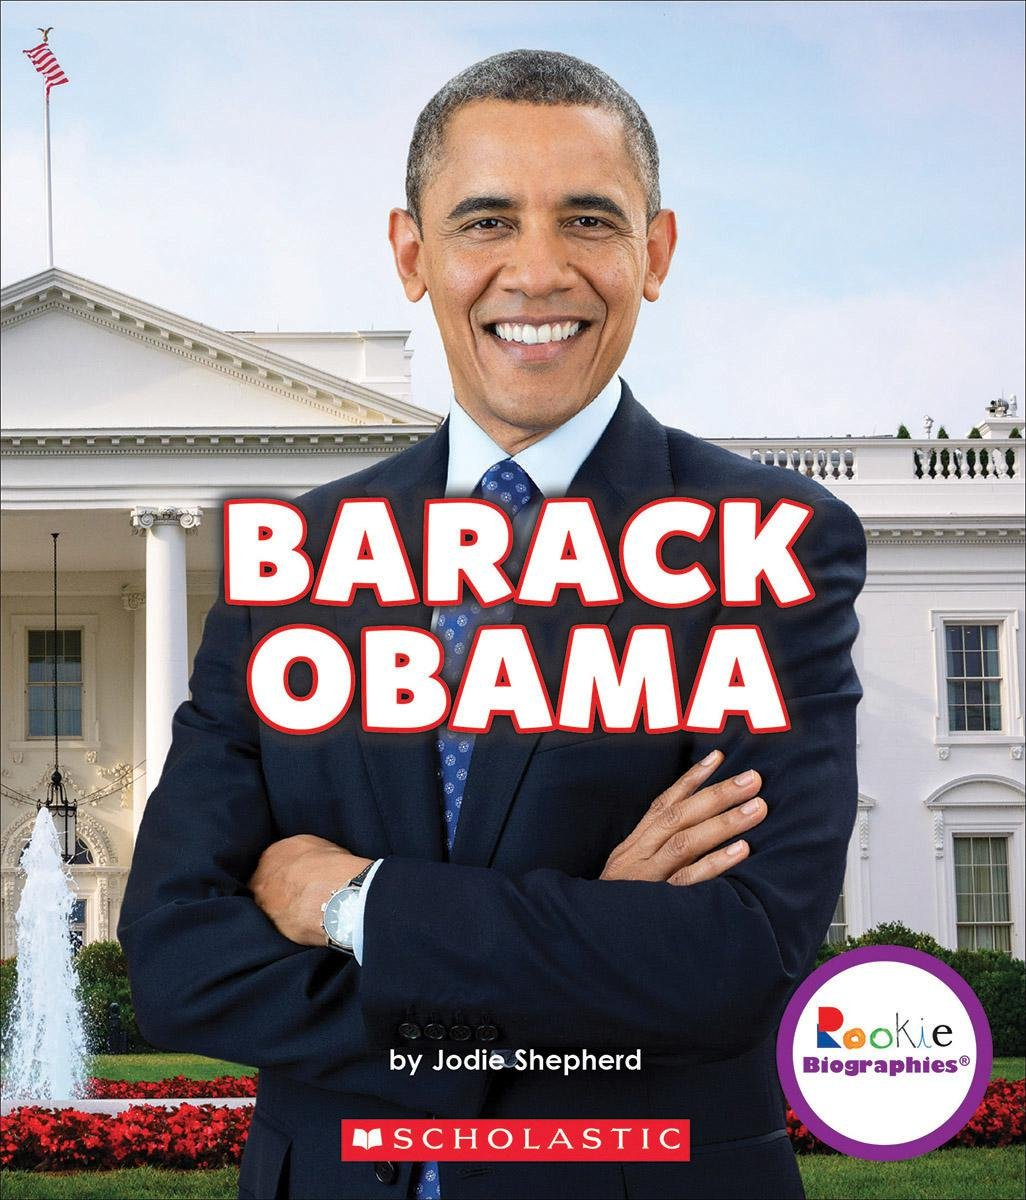 Barack Obama: Groundbreaking President (Rookie Biographies) ebook